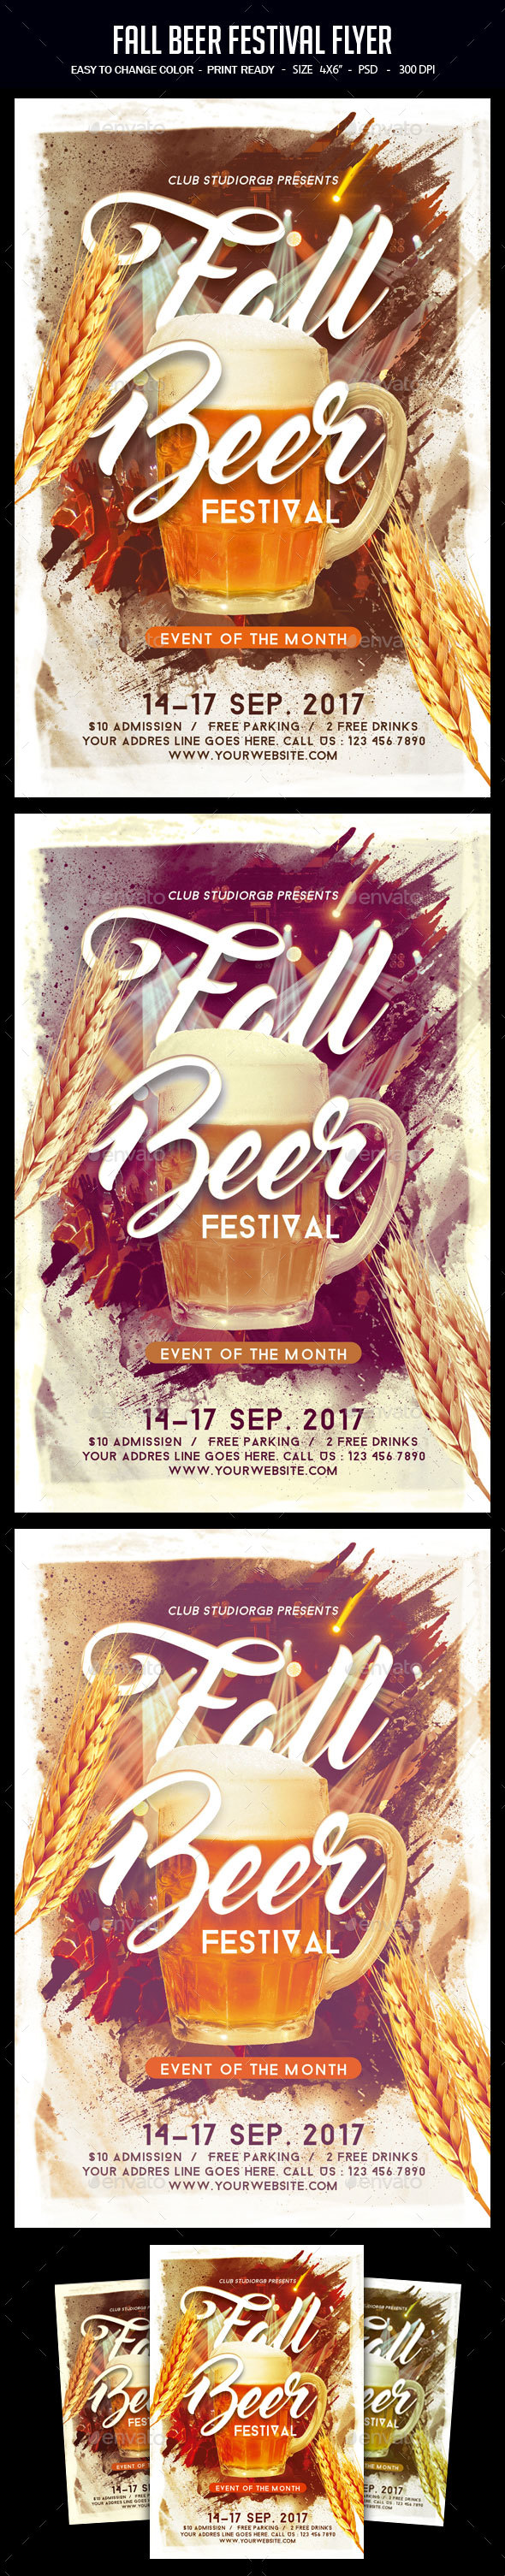 Fall Beer Festival Flyer - Clubs & Parties Events